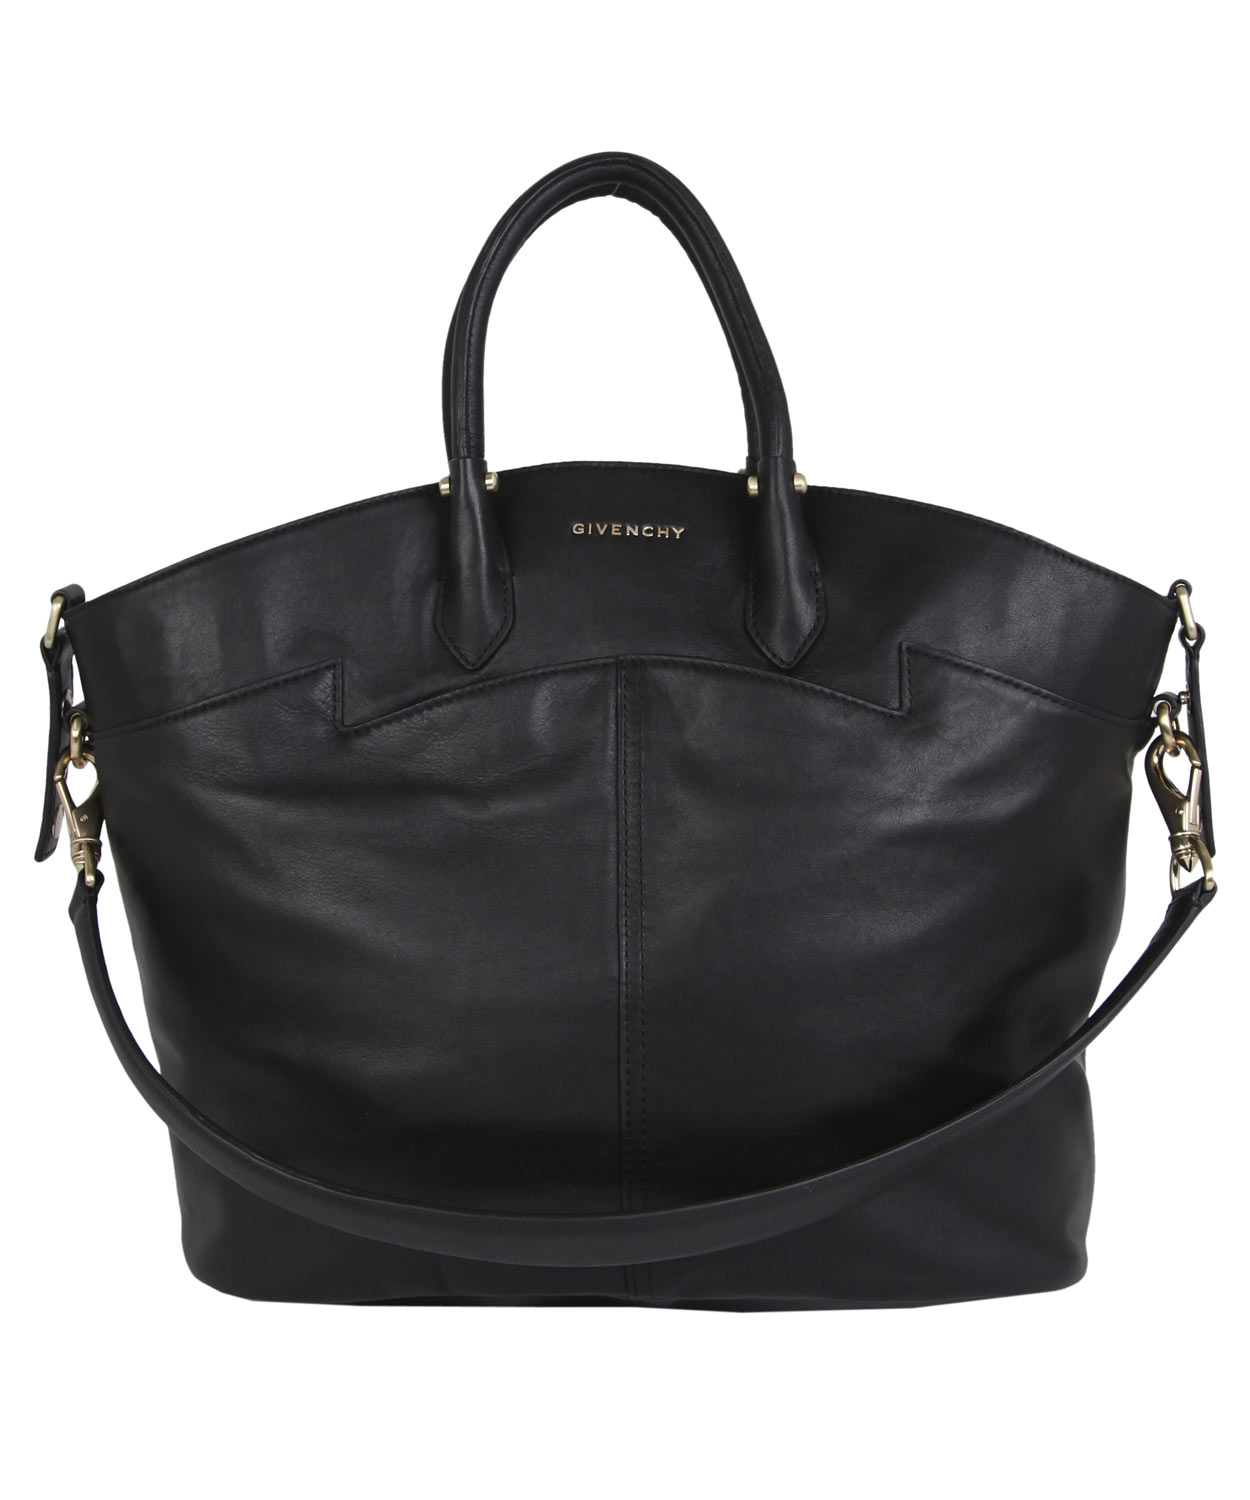 givenchy large black leather tote bag in black lyst